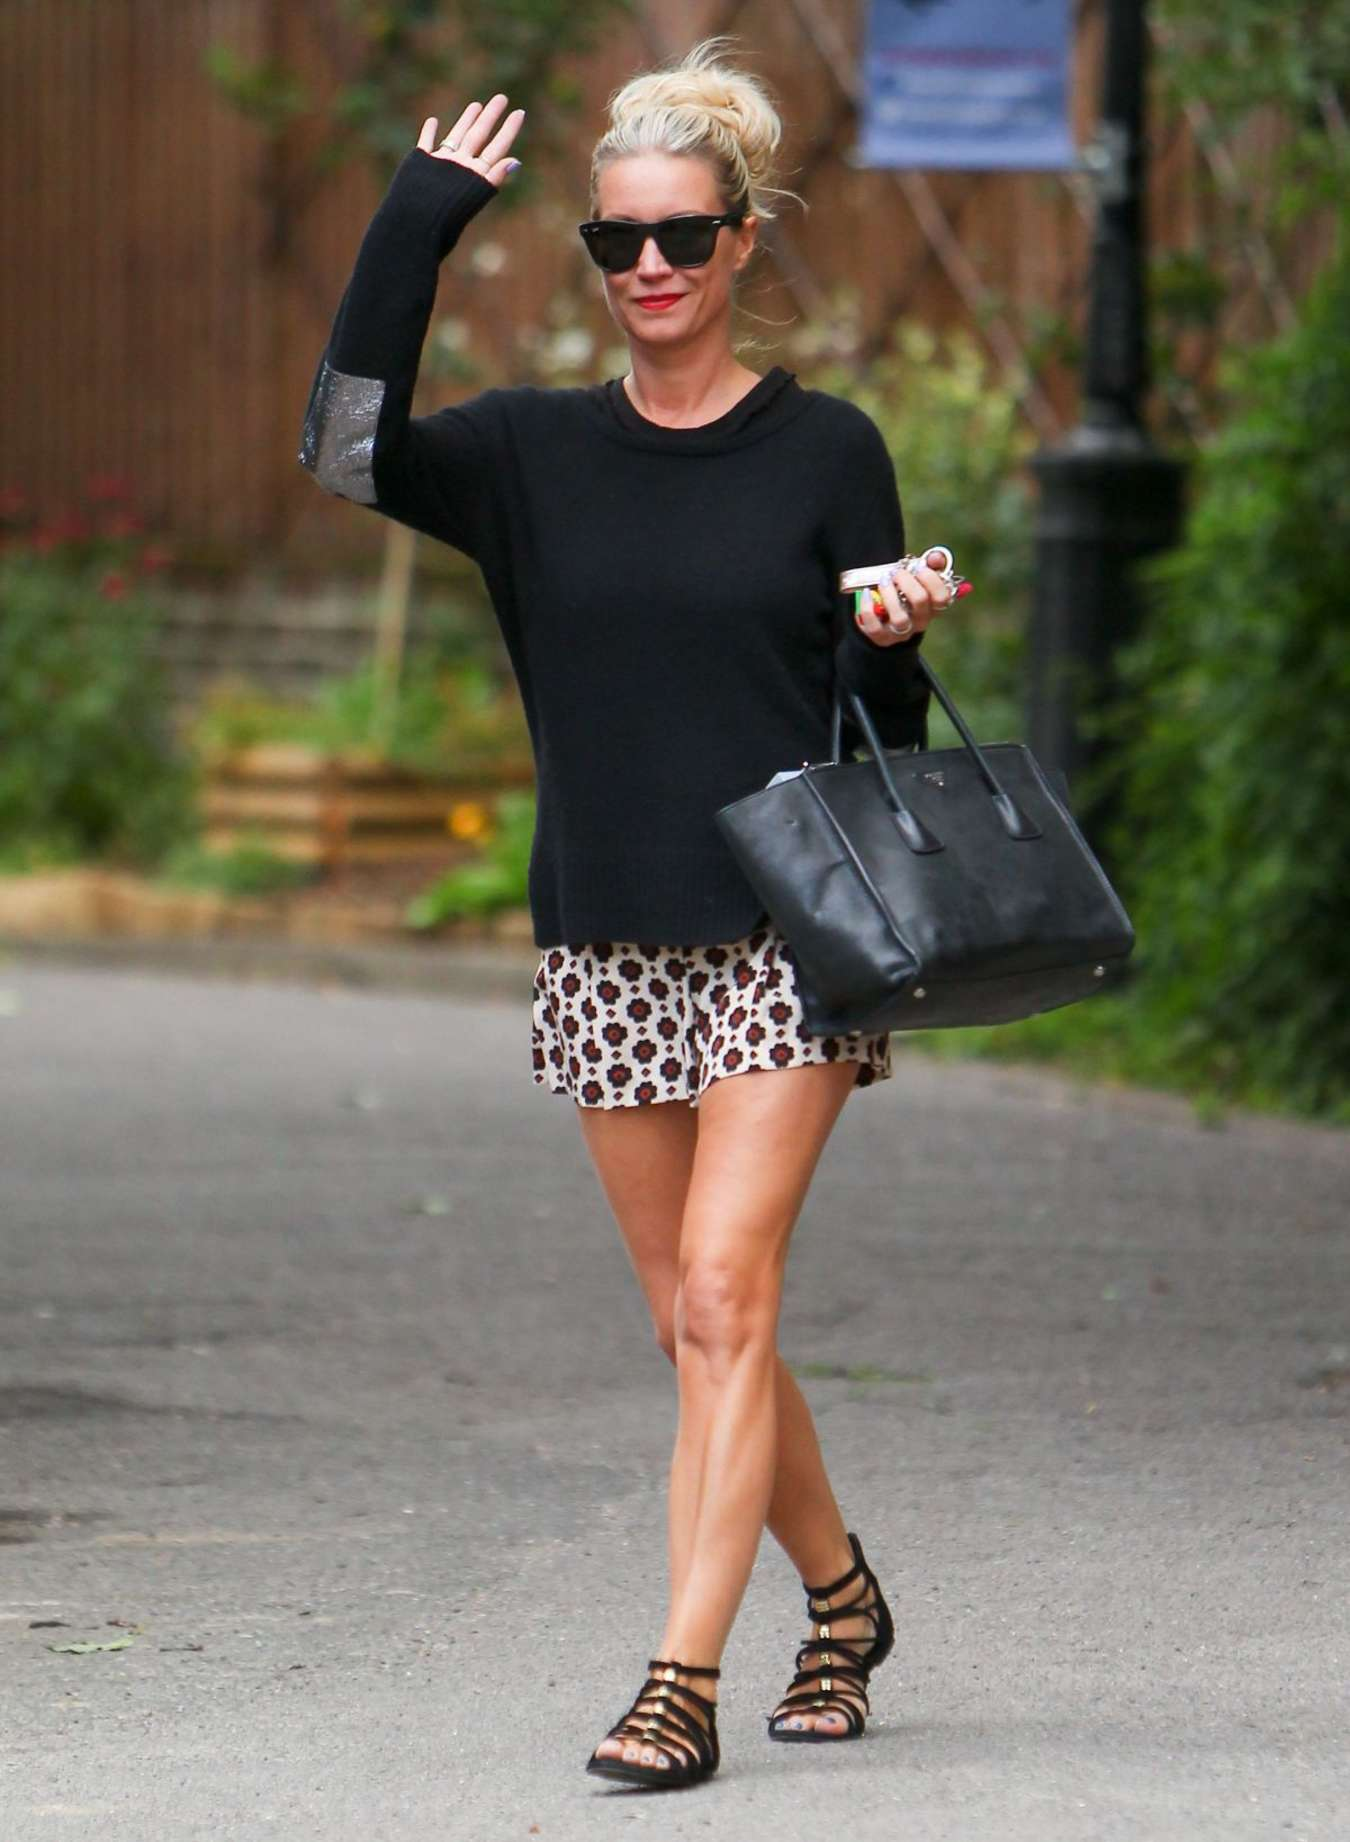 Denise Van Outen in Mini Skirt Out in London